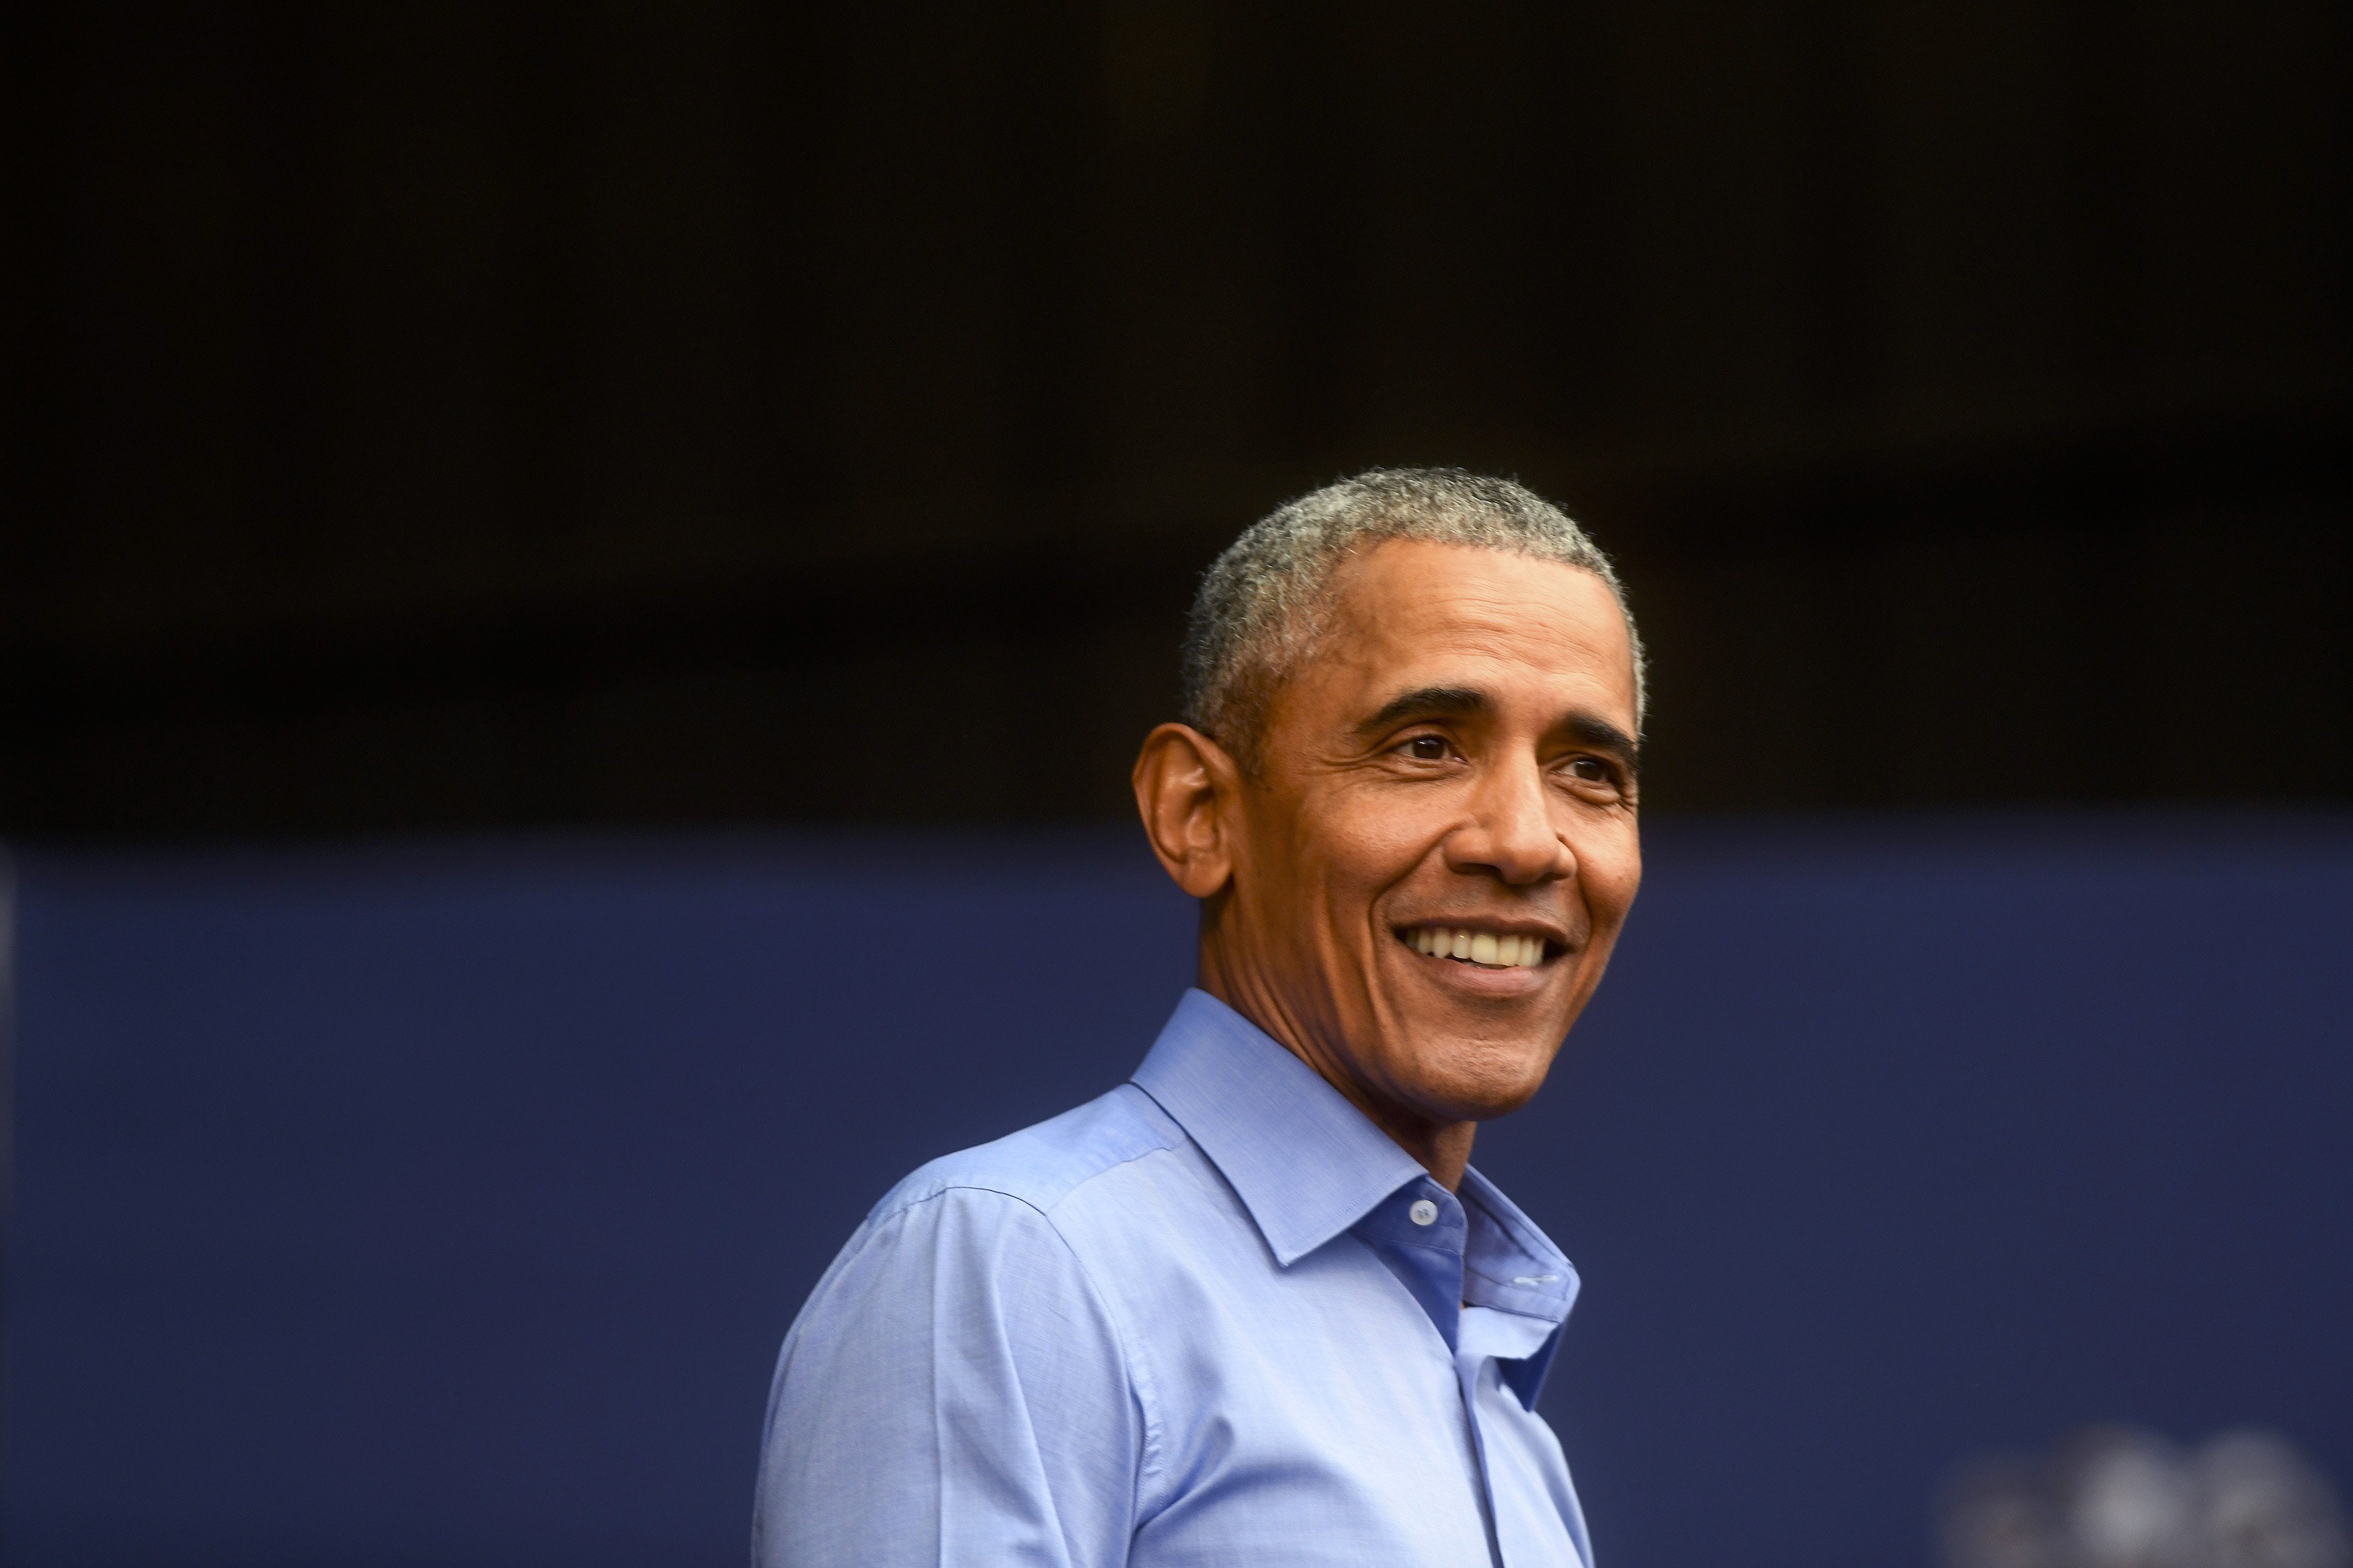 Barack Obama at a campaign rally in Philadelphia, Pennsylvania on Sep. 21, 2018. |Photo: Getty Images